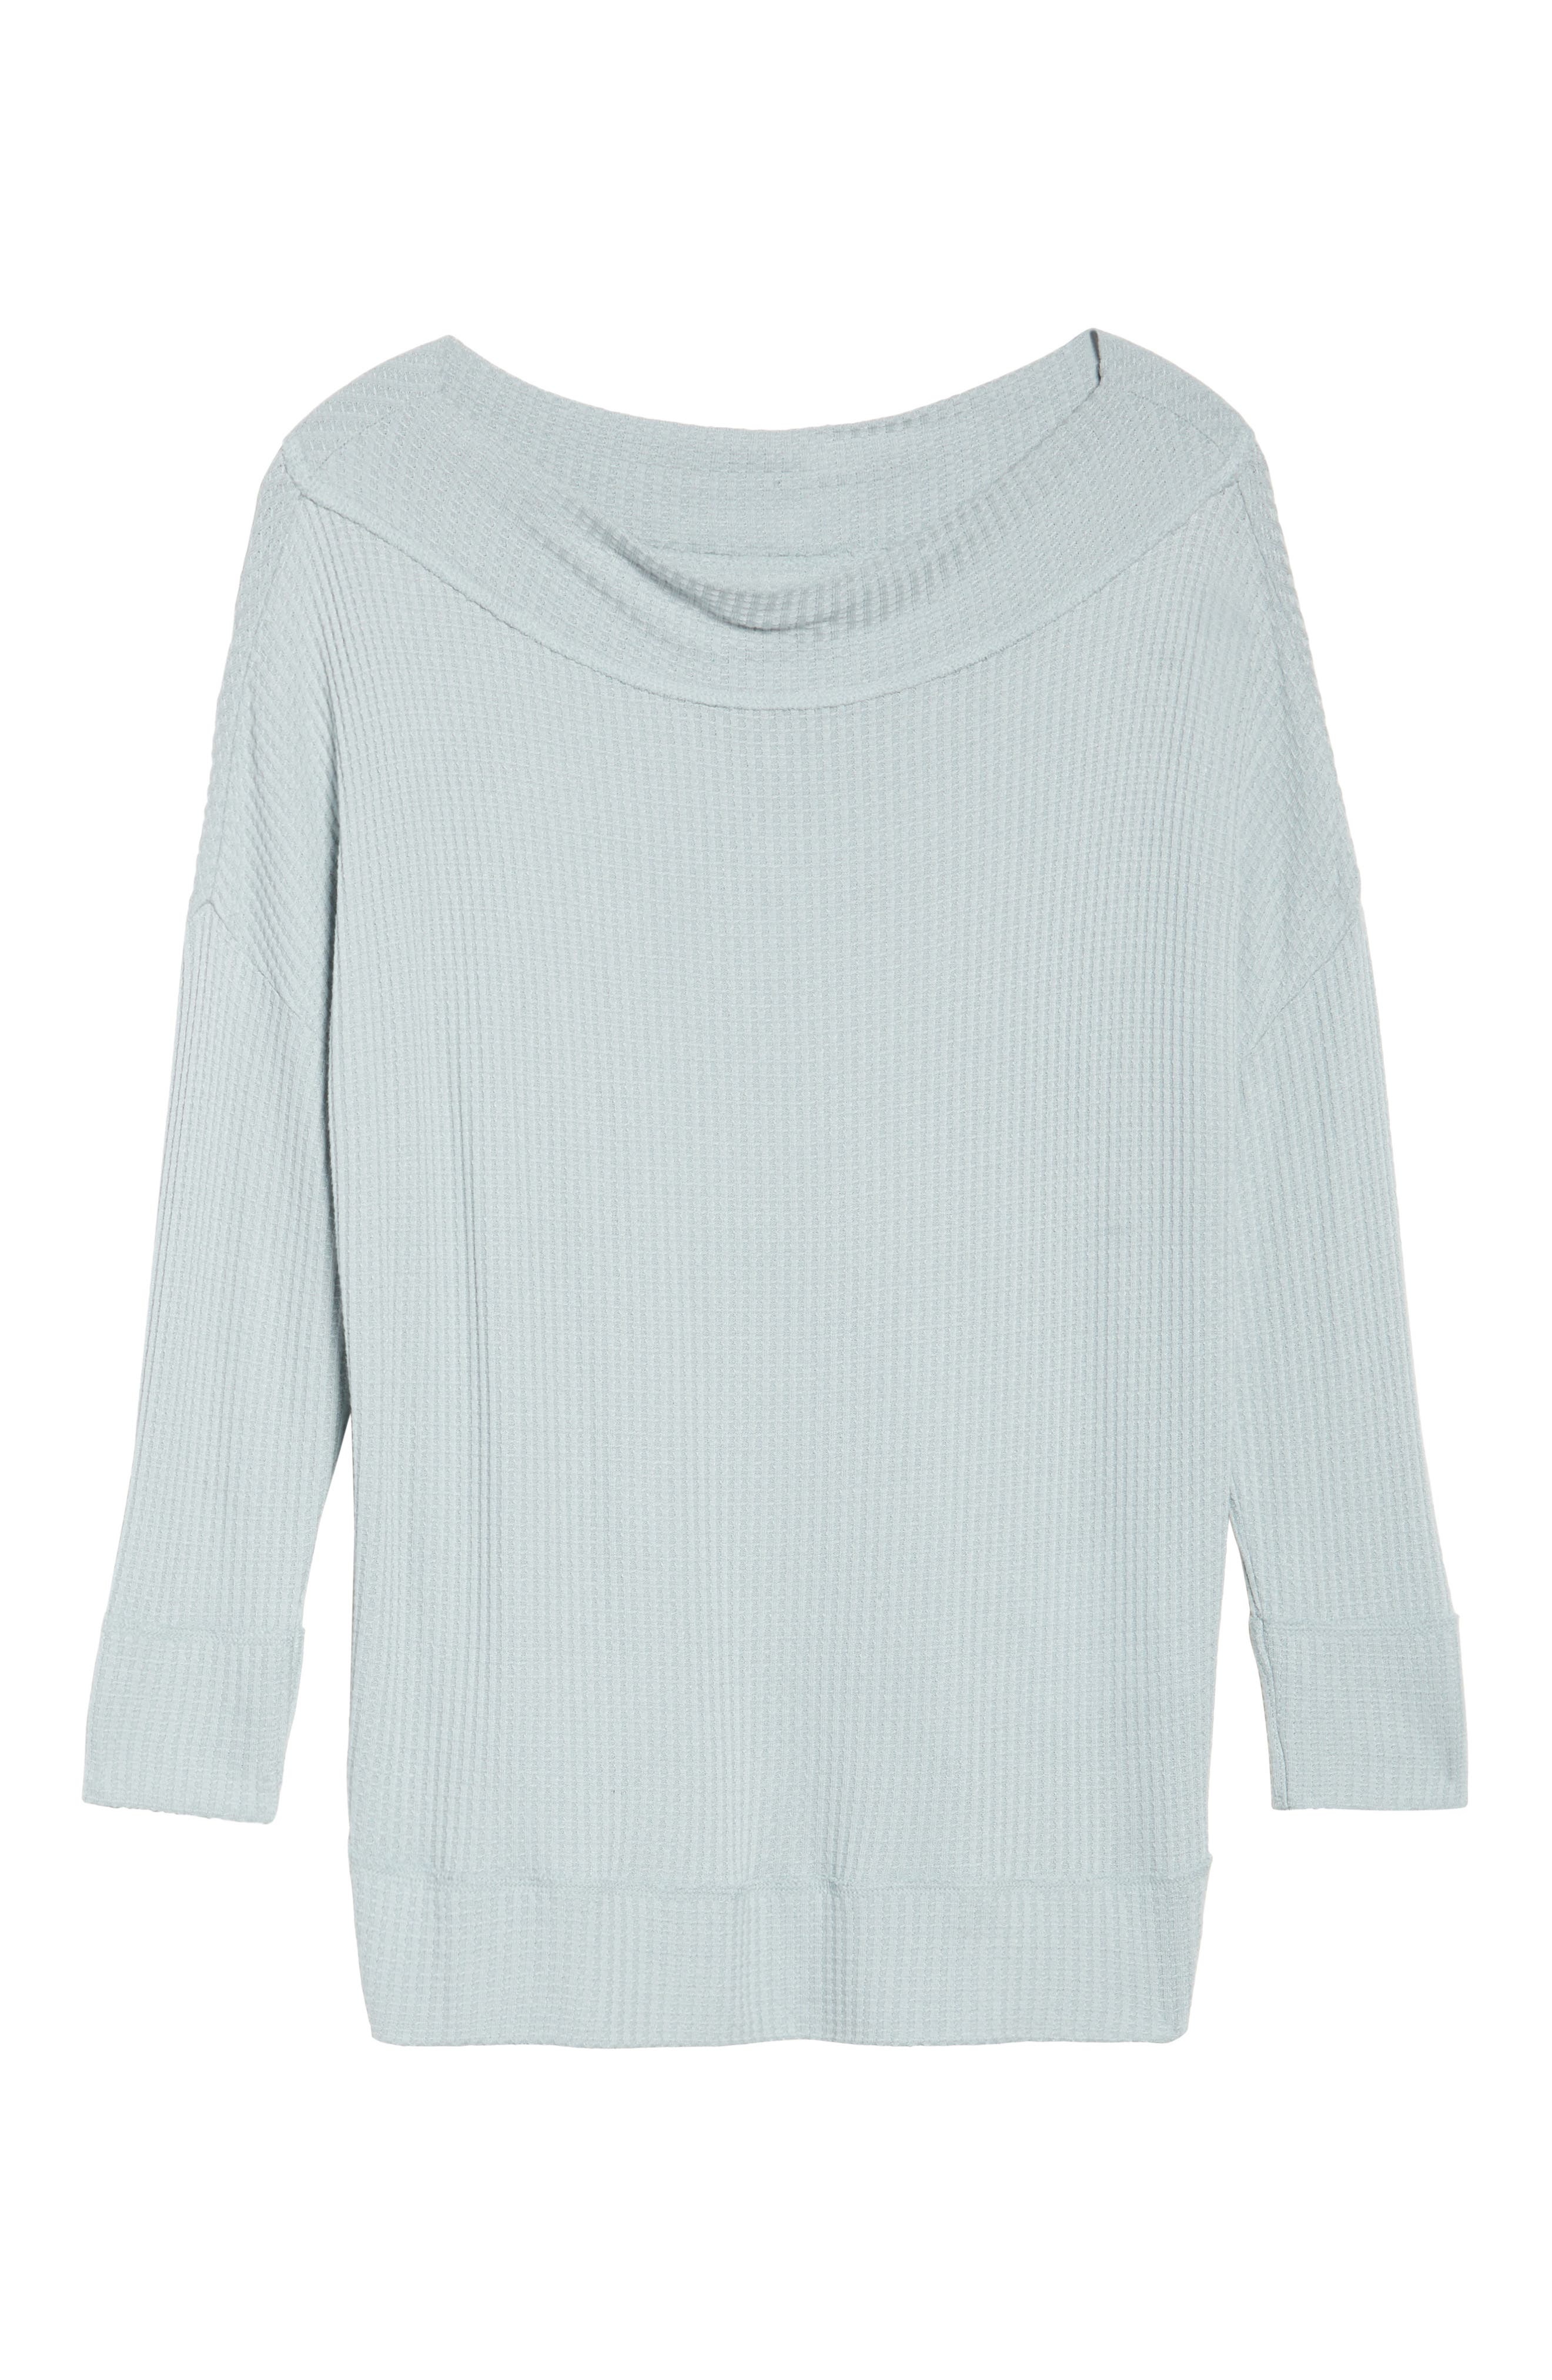 Waffle Thermal Top,                             Alternate thumbnail 6, color,                             430